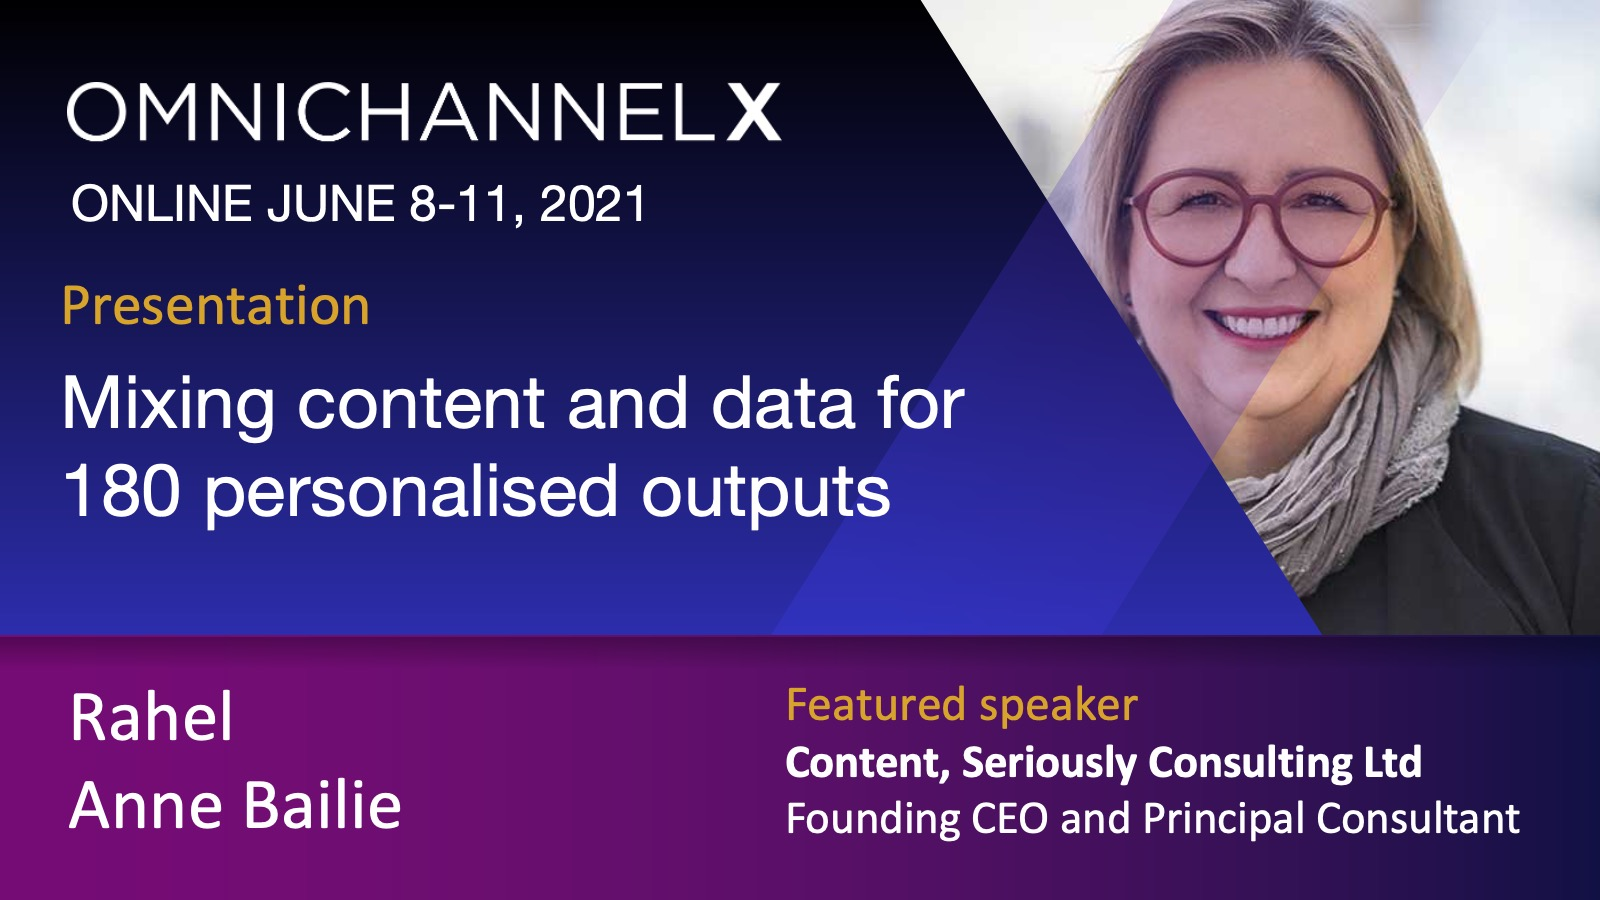 OmnichannelX - Mixing content and data for 180 personalised outputs